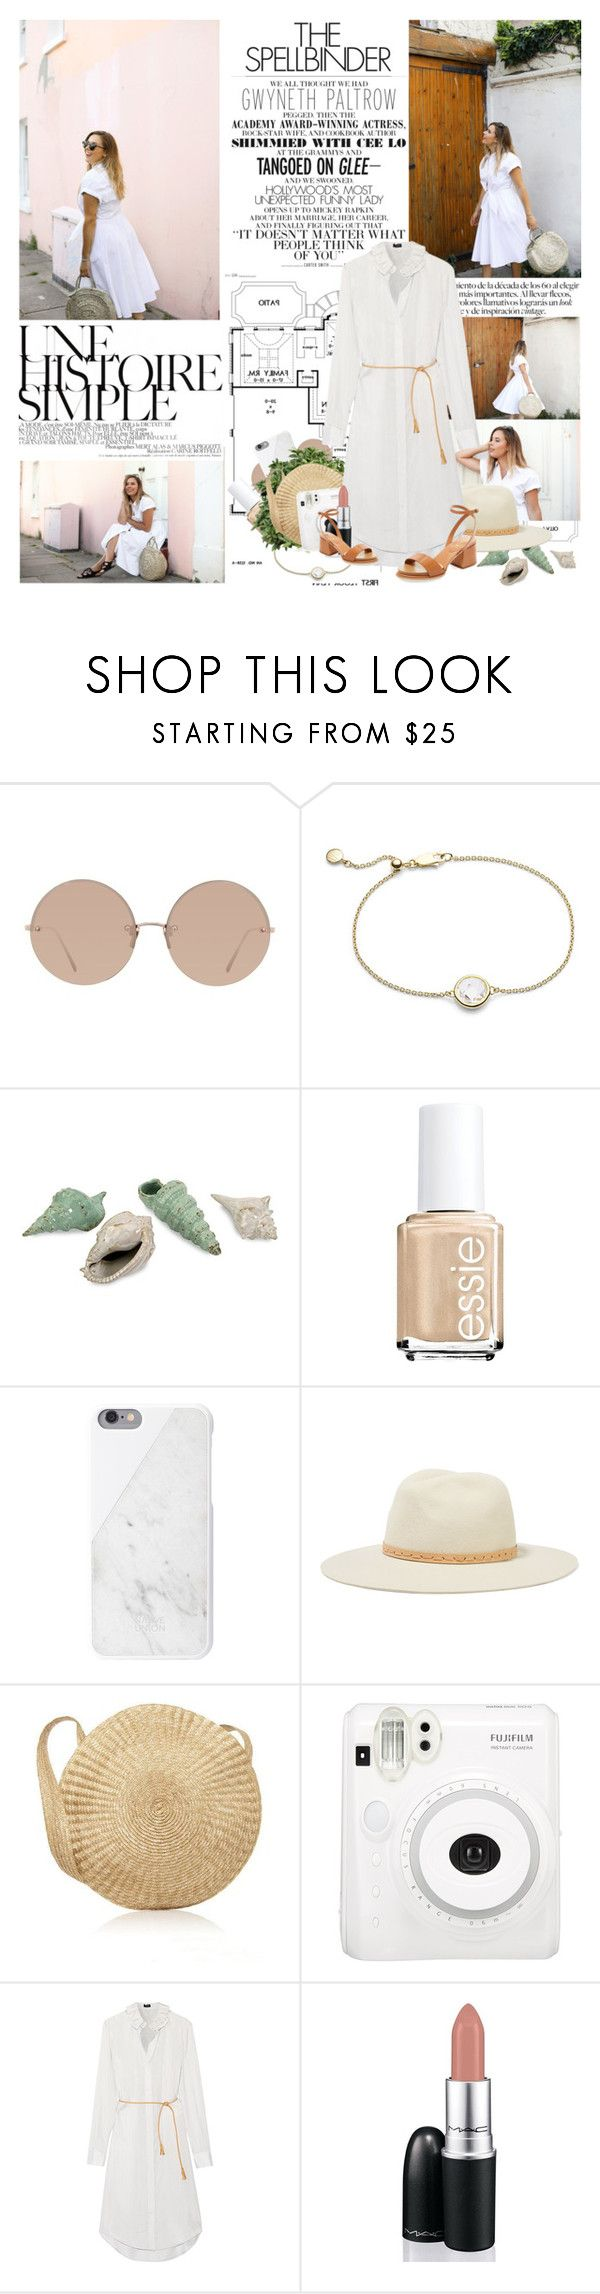 """For thewondersoffashion"" by mars ❤ liked on Polyvore featuring Linda Farrow, Monica Vinader, IMAX Corporation, Native Union, rag & bone, Gwyneth Shoes, Joseph, David Jones, Tod's and Une"